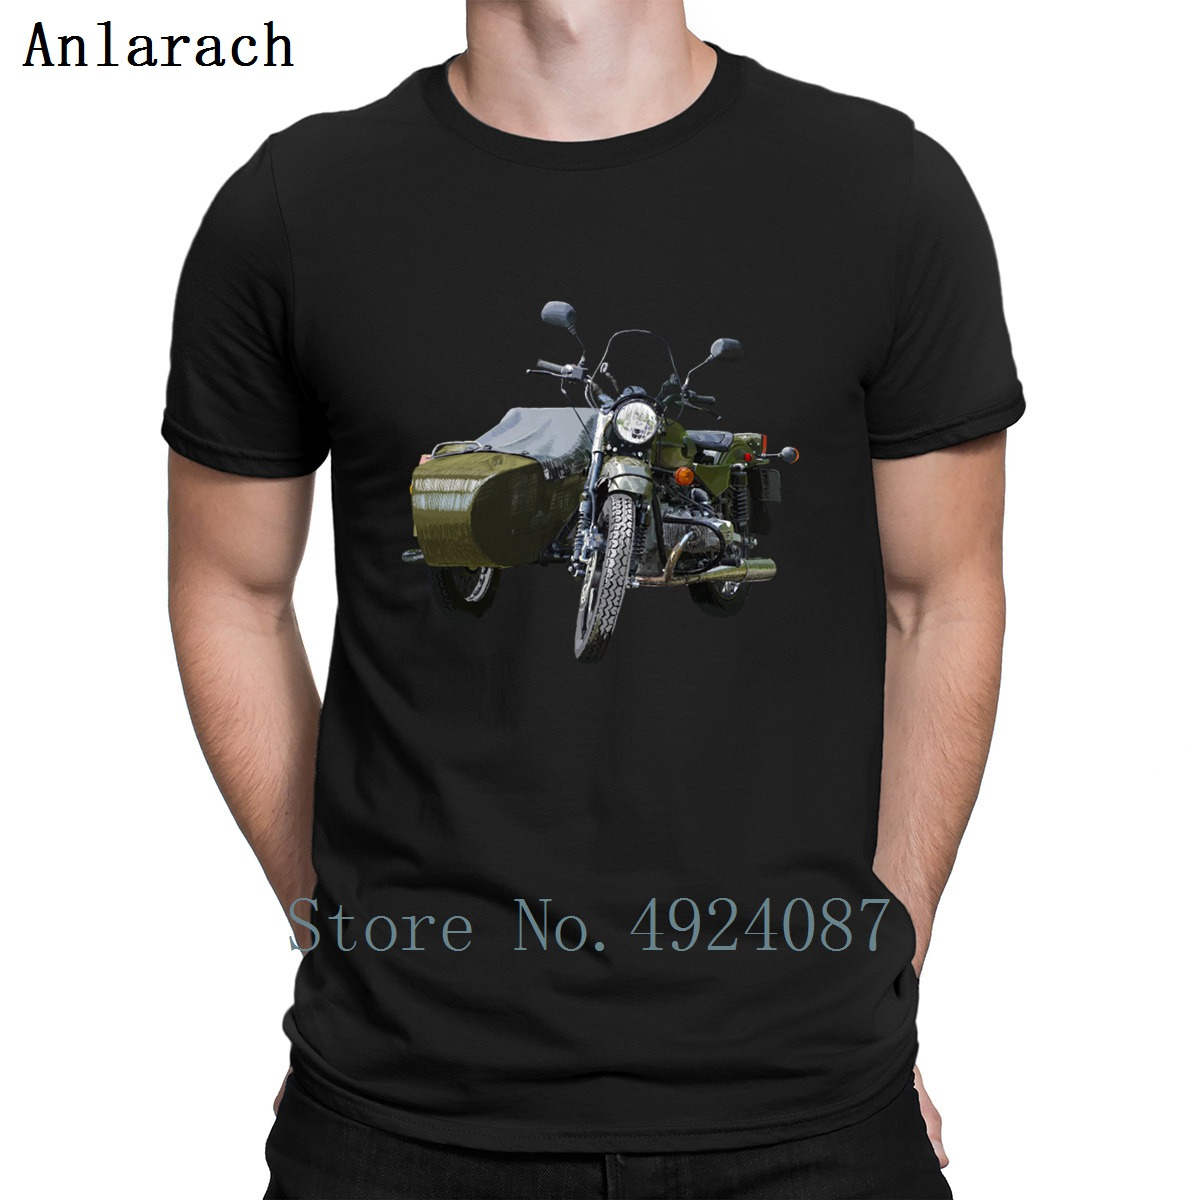 Ural Motorcycle Biker T Shirt Gift Character Summer Trend Tee Shirt Building Top Quality Cotton Novelty